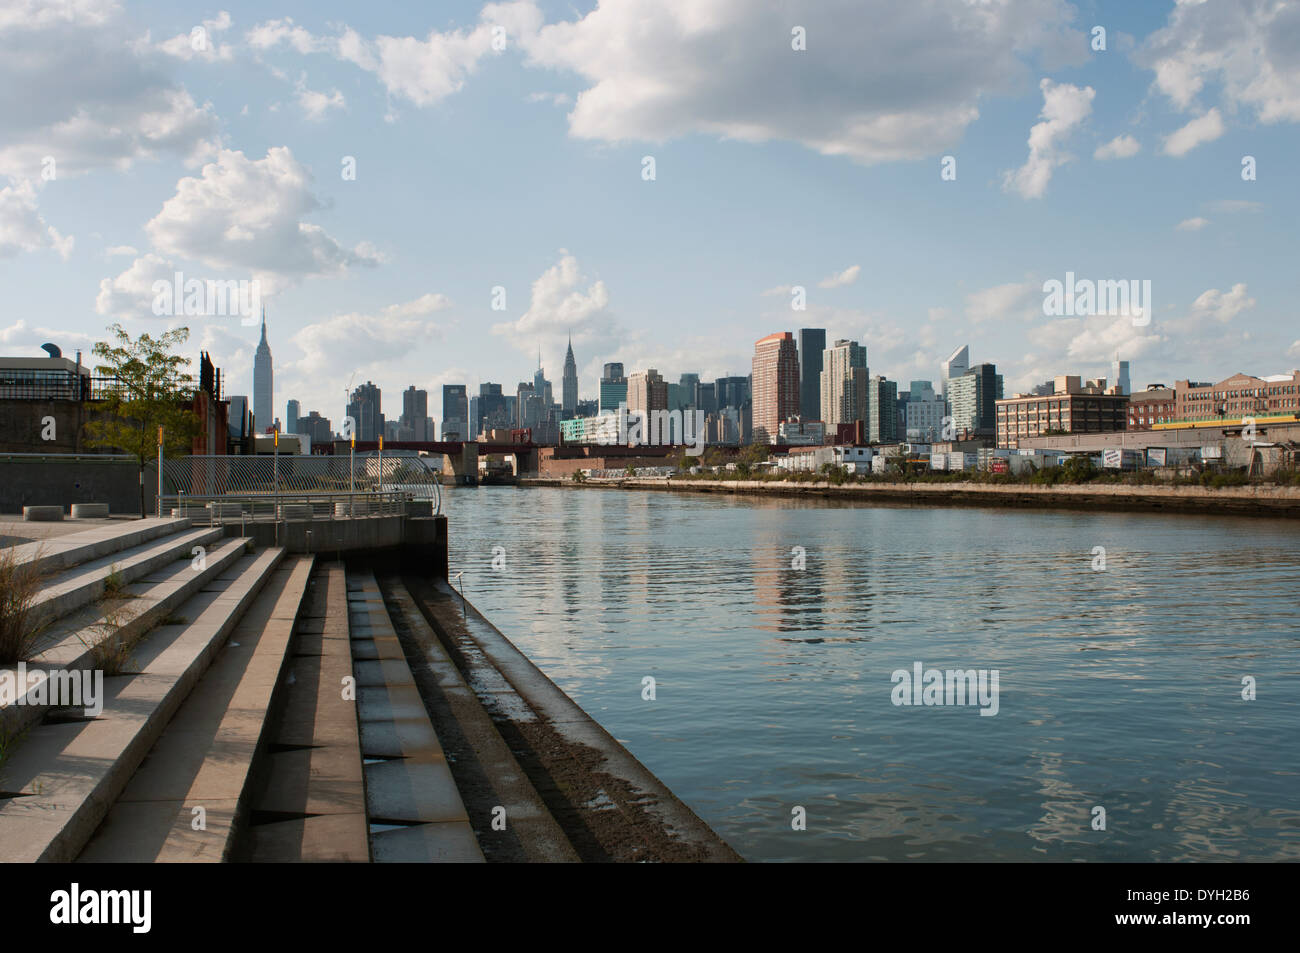 The view from Newtown Creek park in Greenpoint, New York. - Stock Image